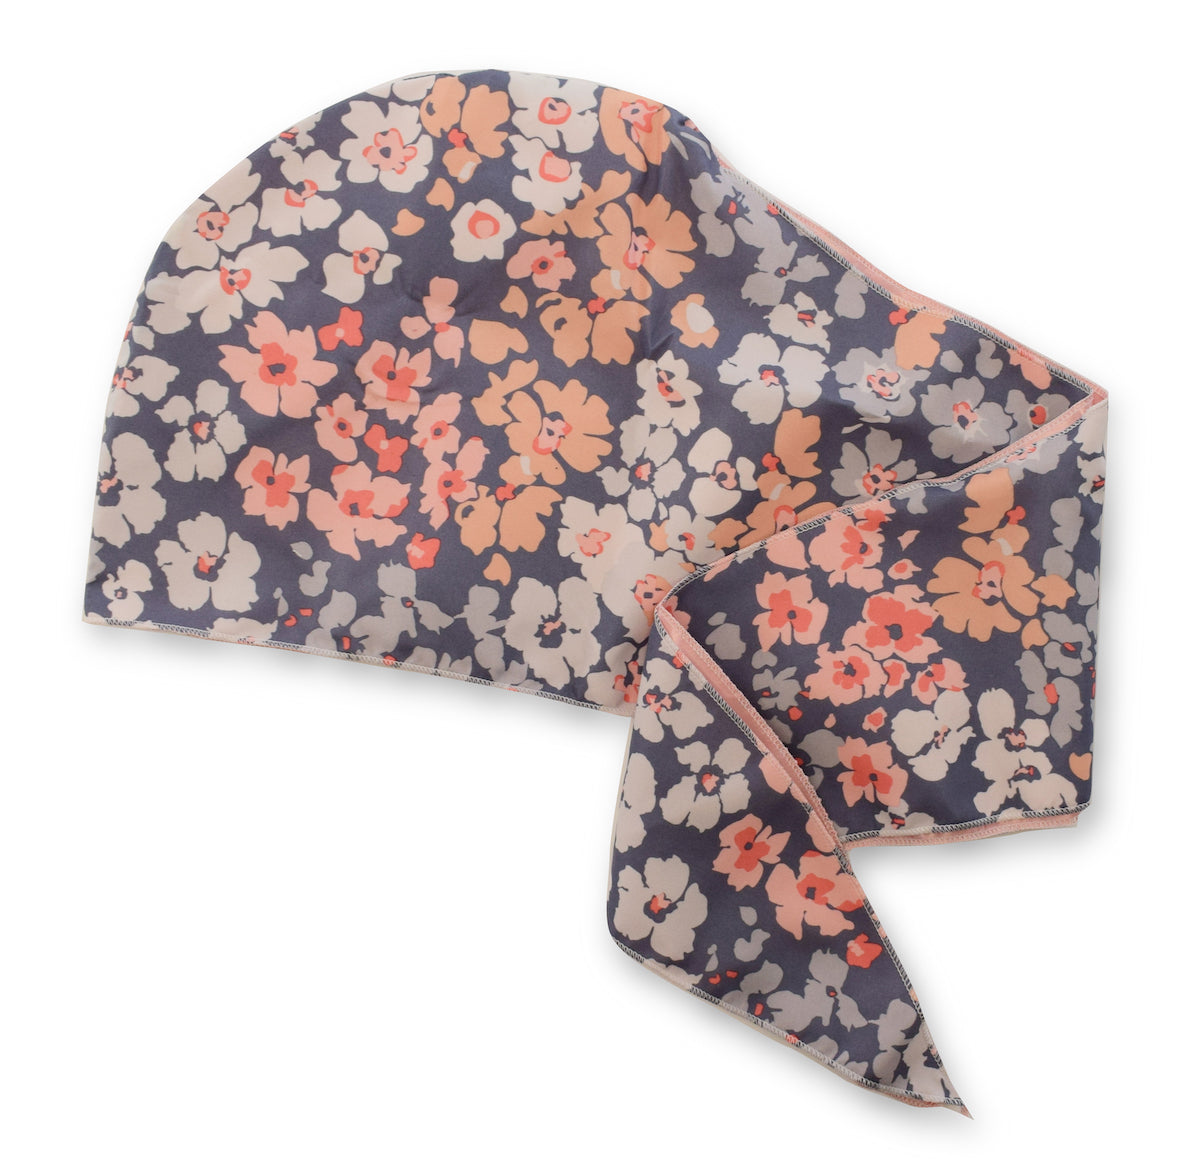 Satin-Lined Wrap Cap - Floral | ADAMA BEAUTY CO. | Curly Haircare Accessories